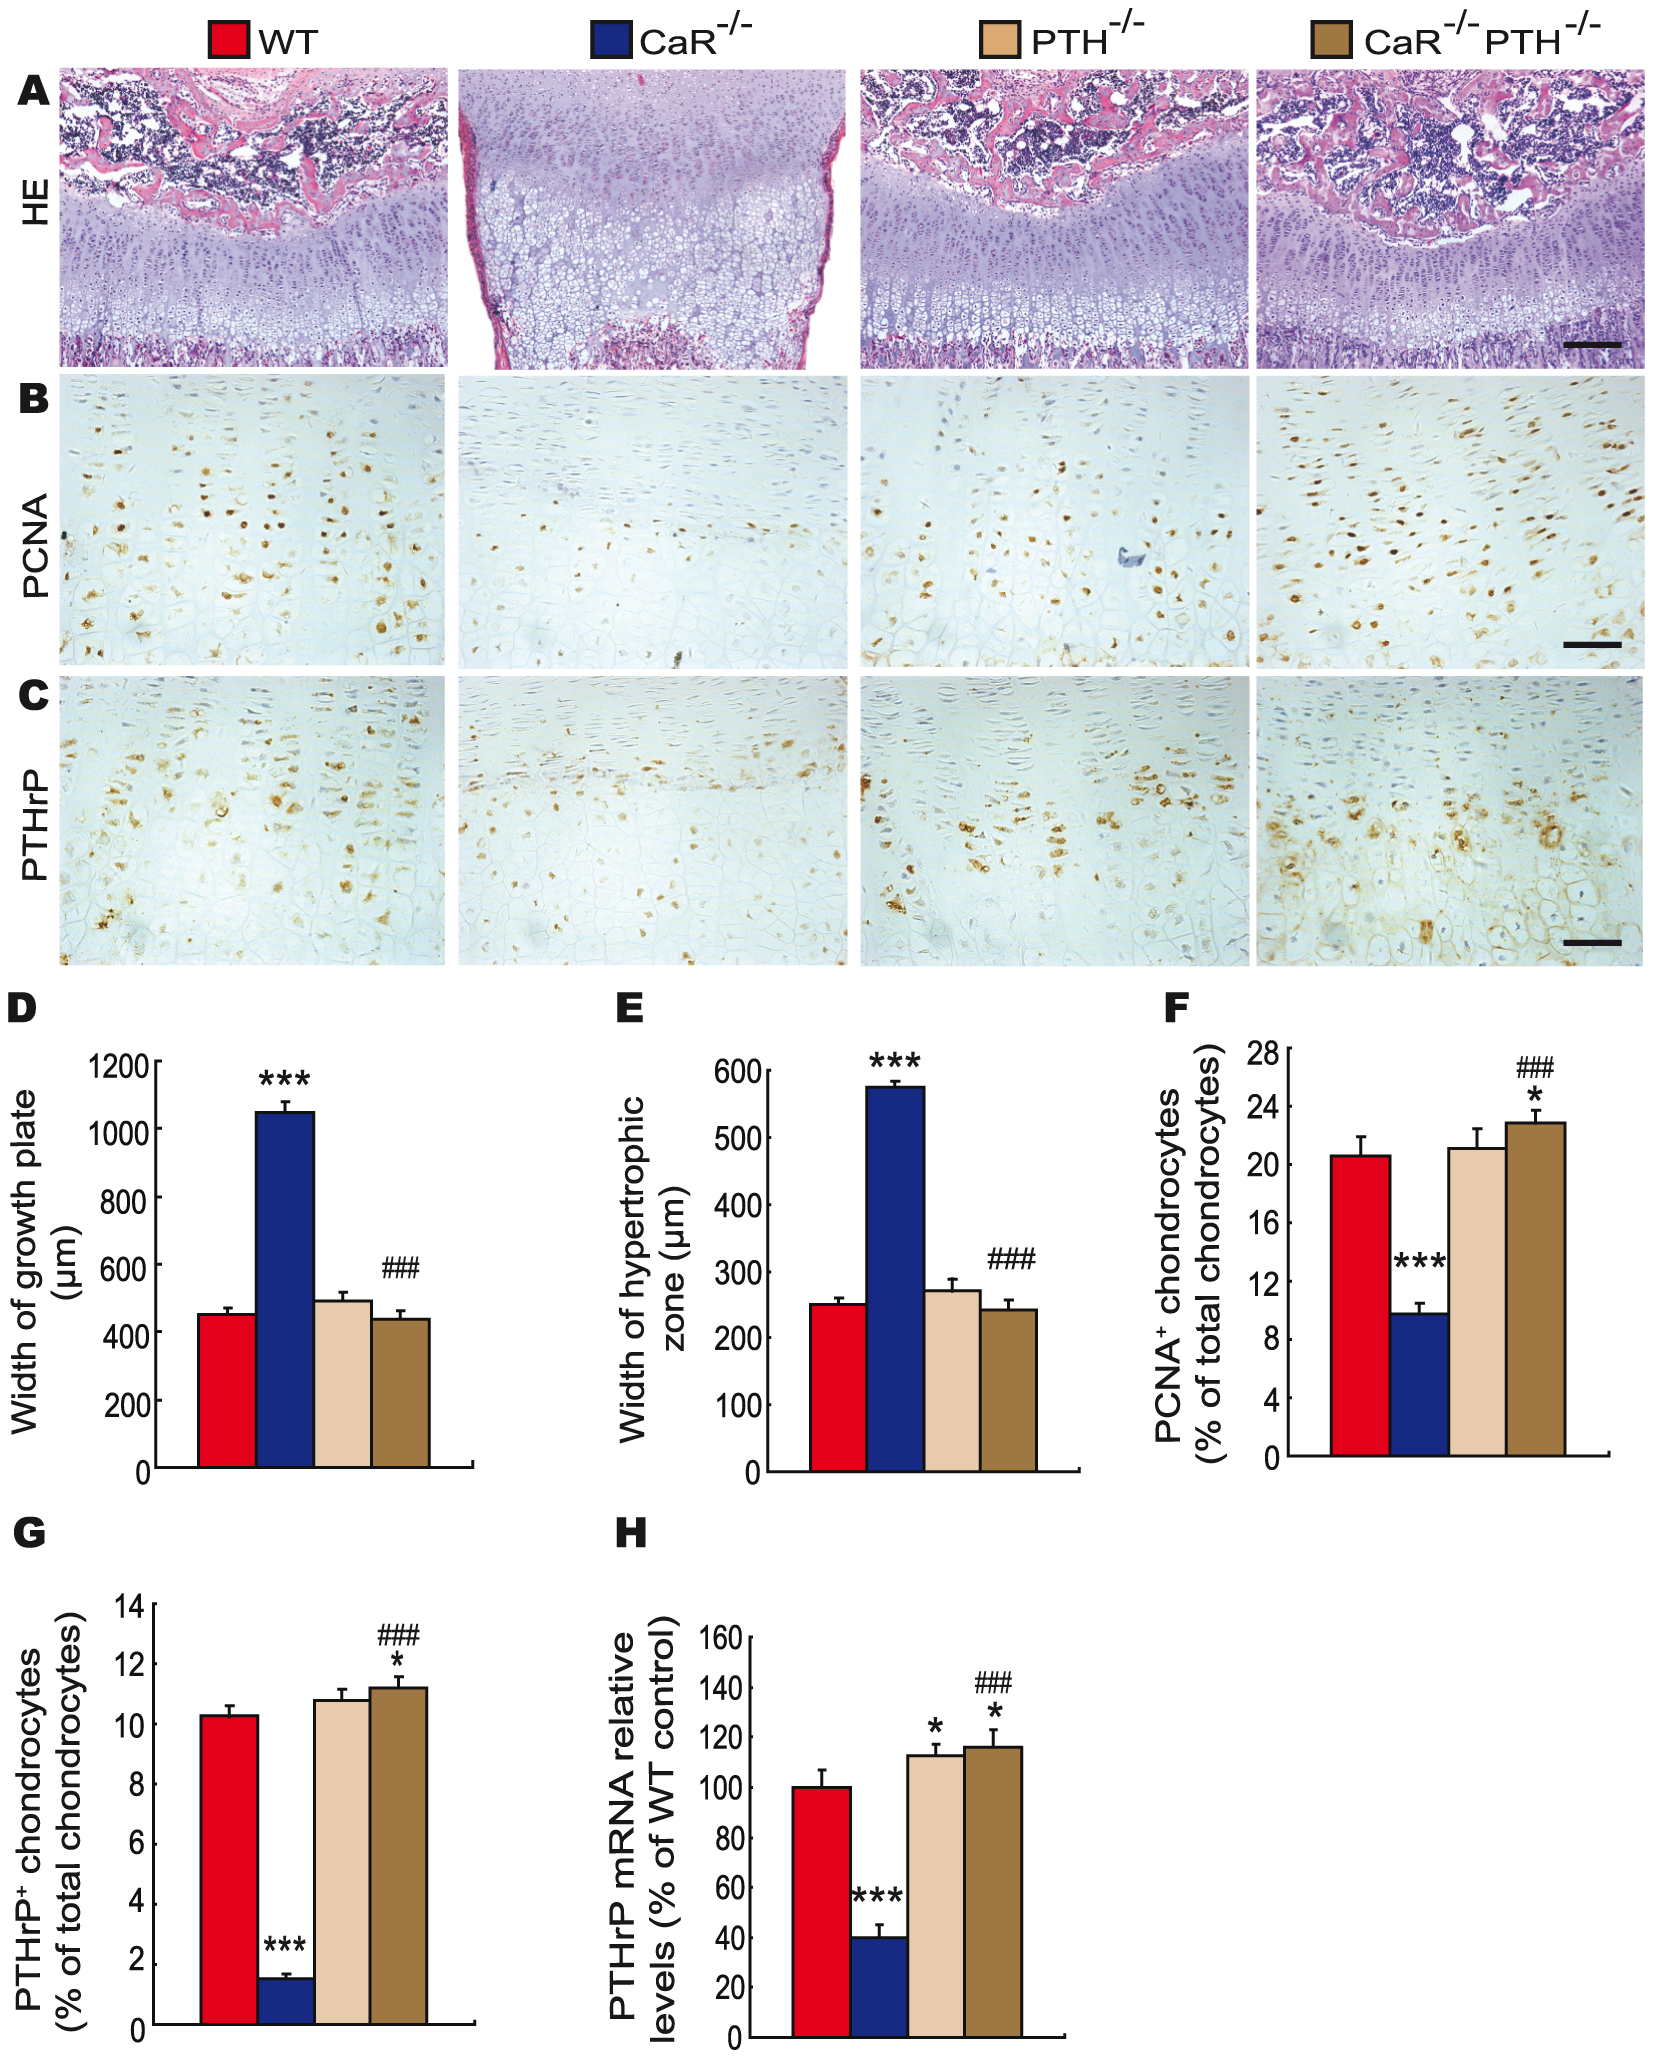 Effects of deletion of PTH on endochondral bone formation in CaR–deficient mice.